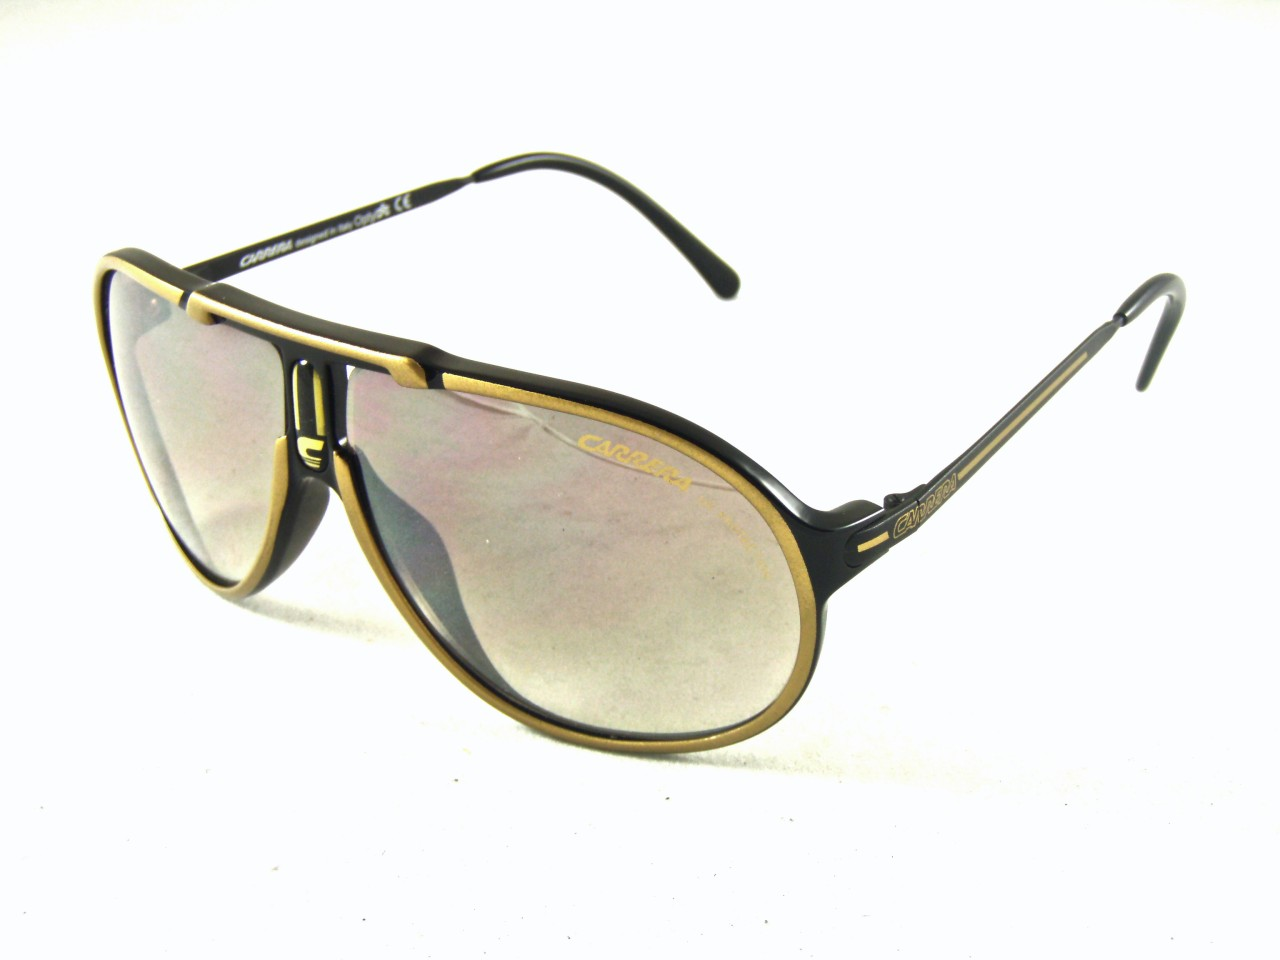 BLACK-GOLD-CARRERA-JET-09M-BRR-0C-SUNGLASSES